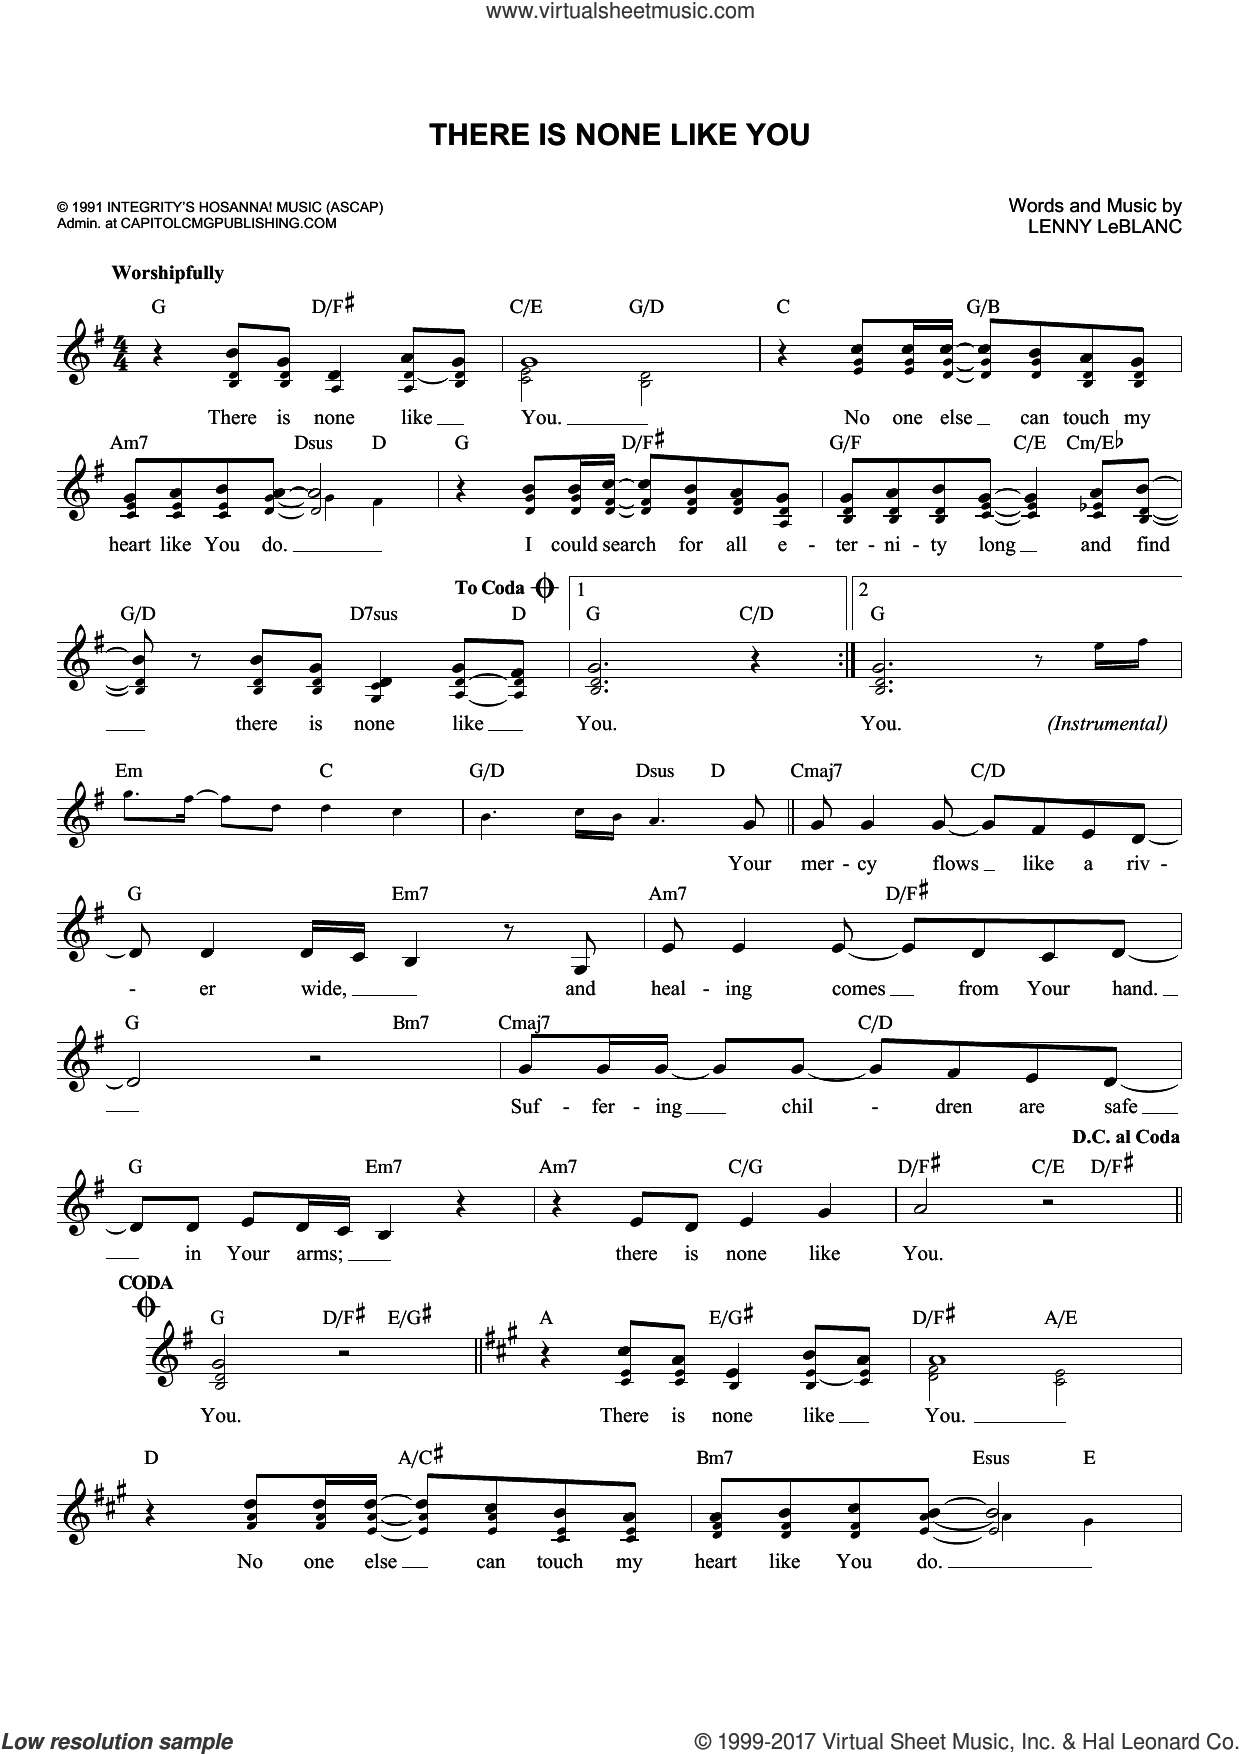 There Is None Like You sheet music for voice and other instruments (fake book) by Lenny LeBlanc. Score Image Preview.